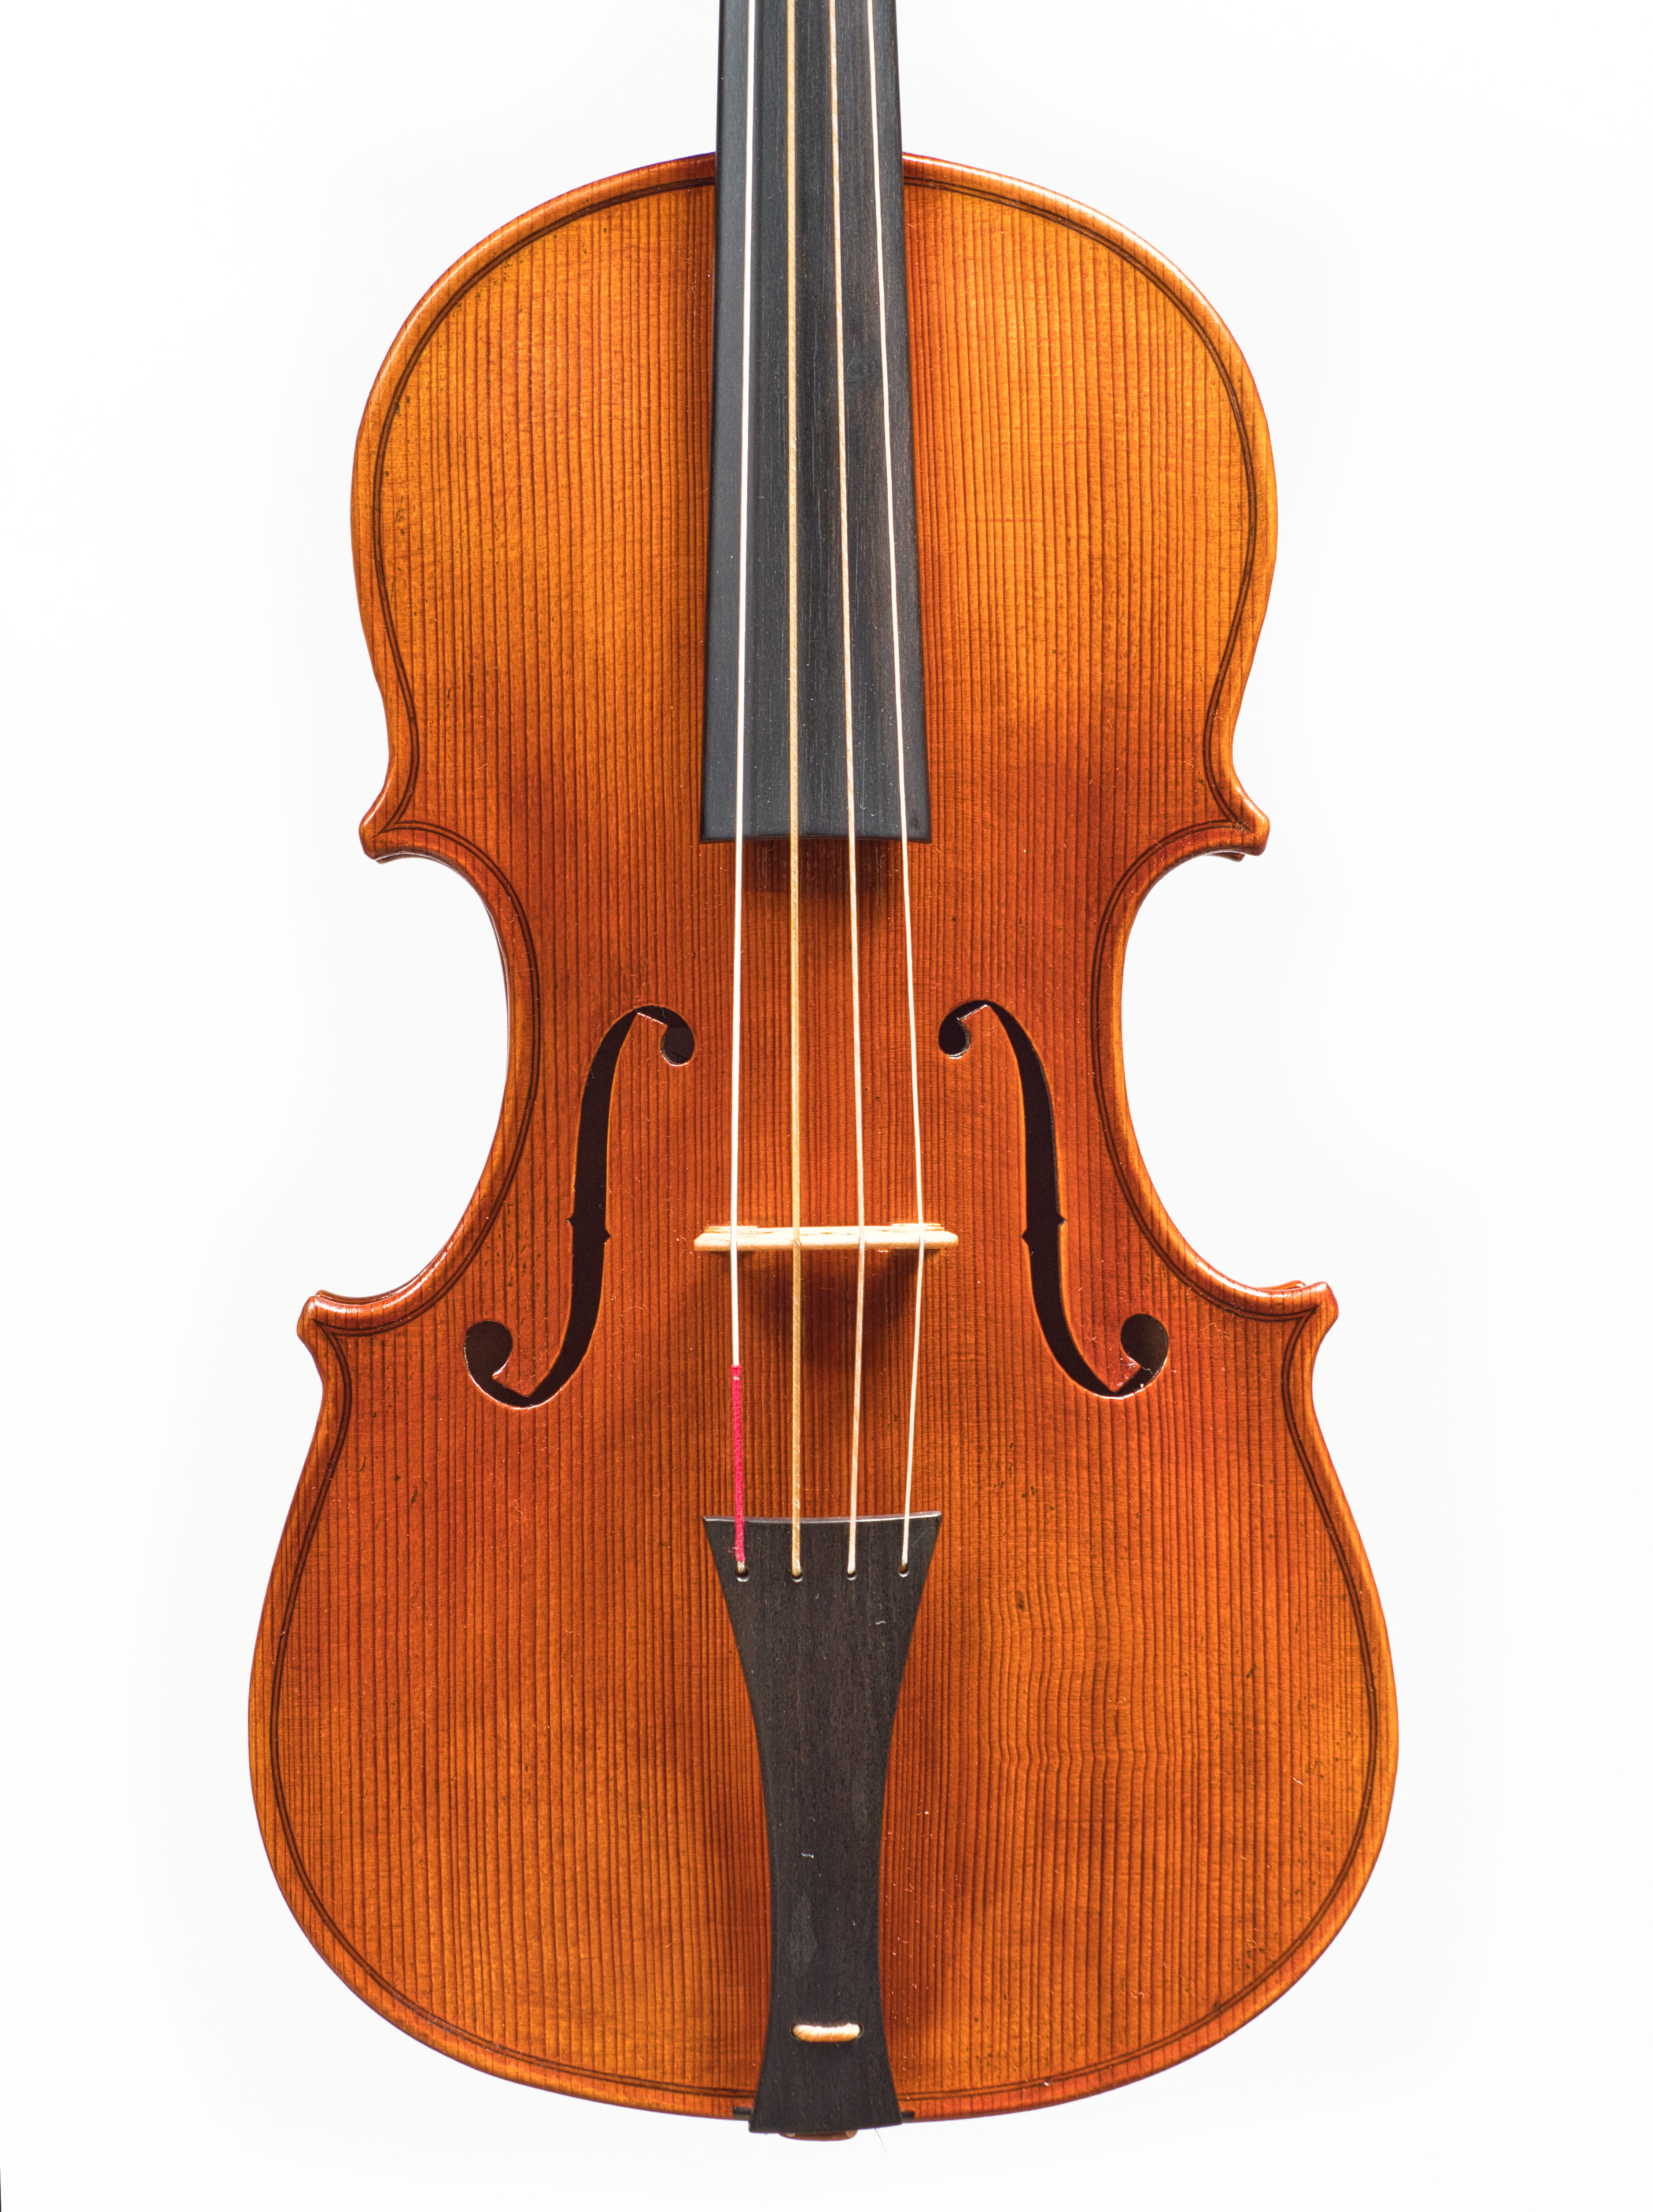 Baroque Violin by Arnaud Giral, 2018